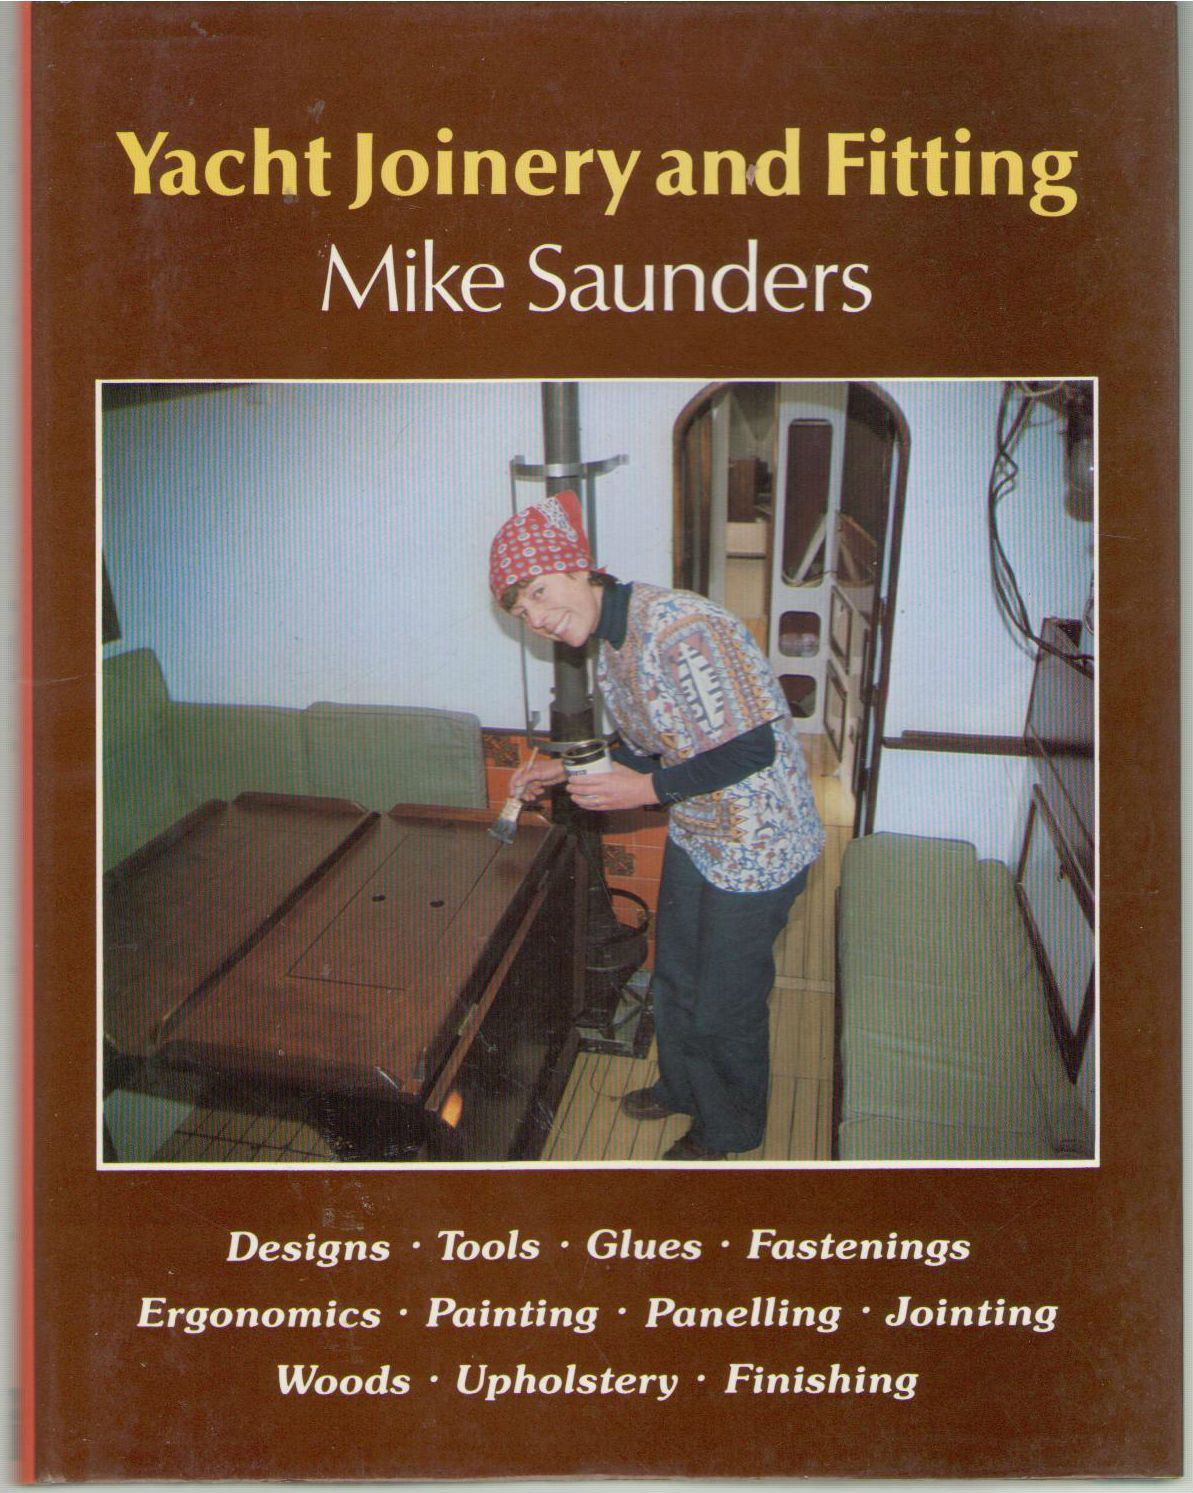 Yacht Joinery and Fitting, Saunders, Mike